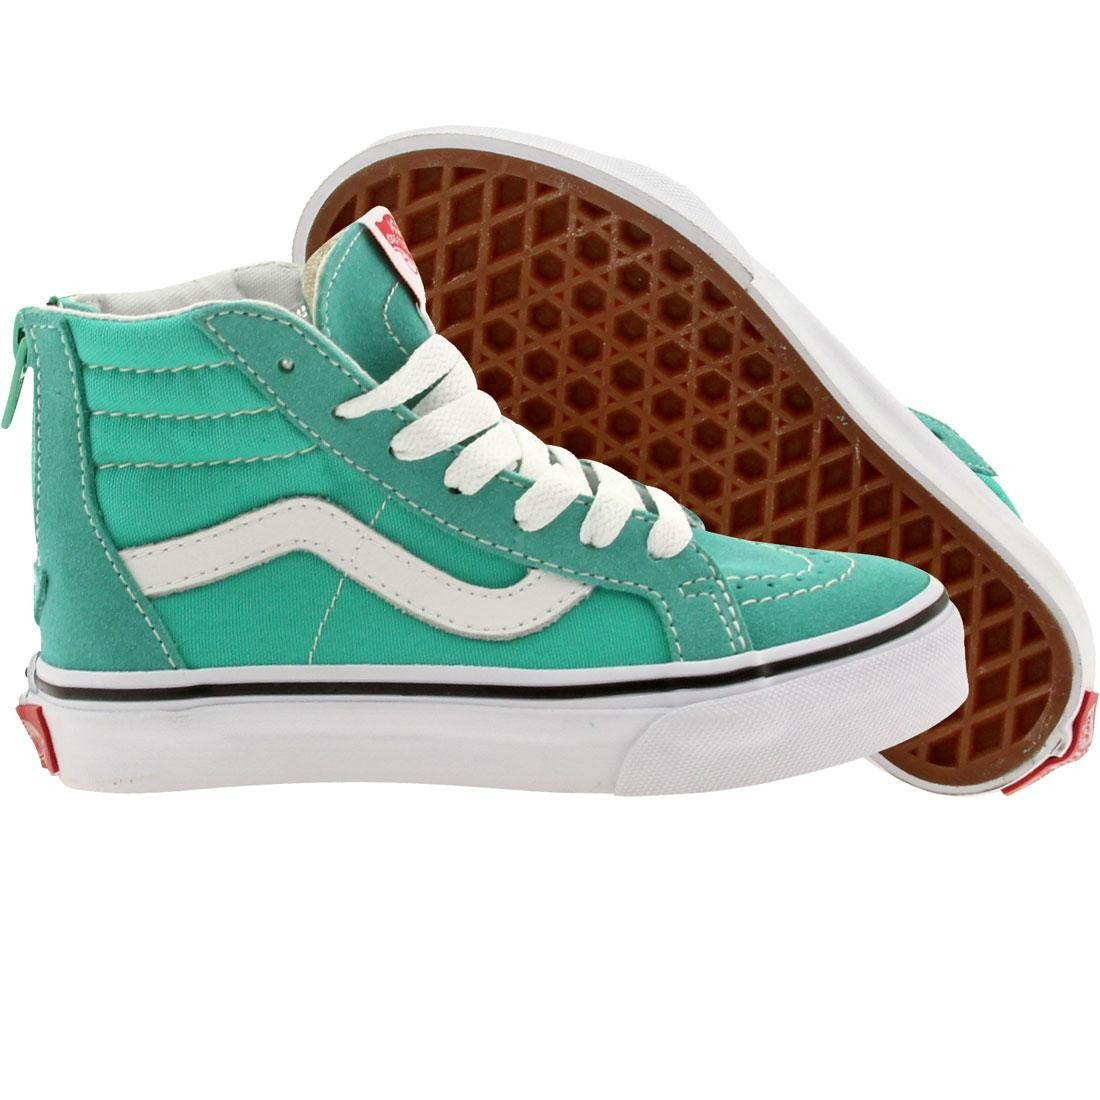 Vans Little Kids Sk8 Hi Zip (teal / aqua green / true white)